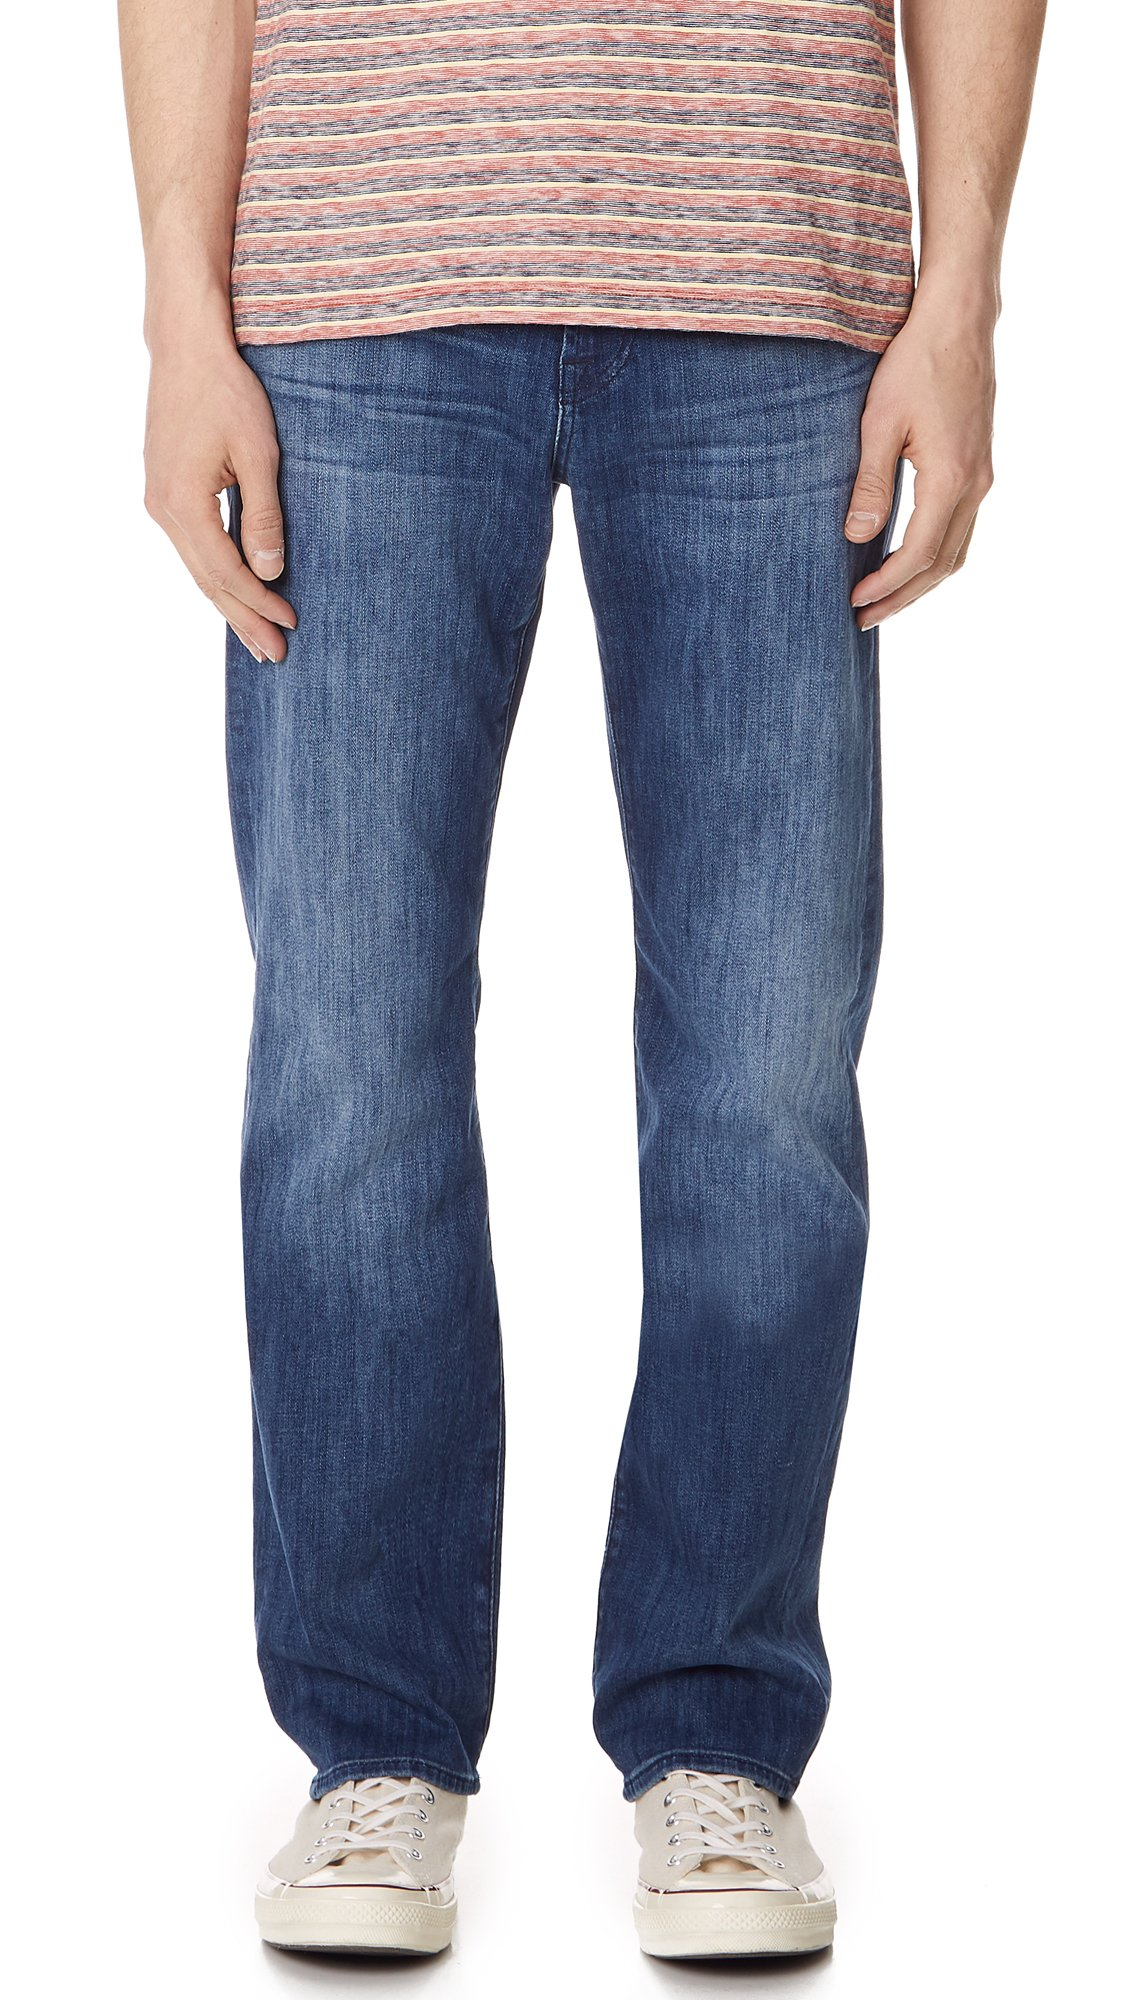 7 For All Mankind Men's Austyn Relaxed Straight Luxe Performance Jean, Nakkitta Blue, 29x33.5